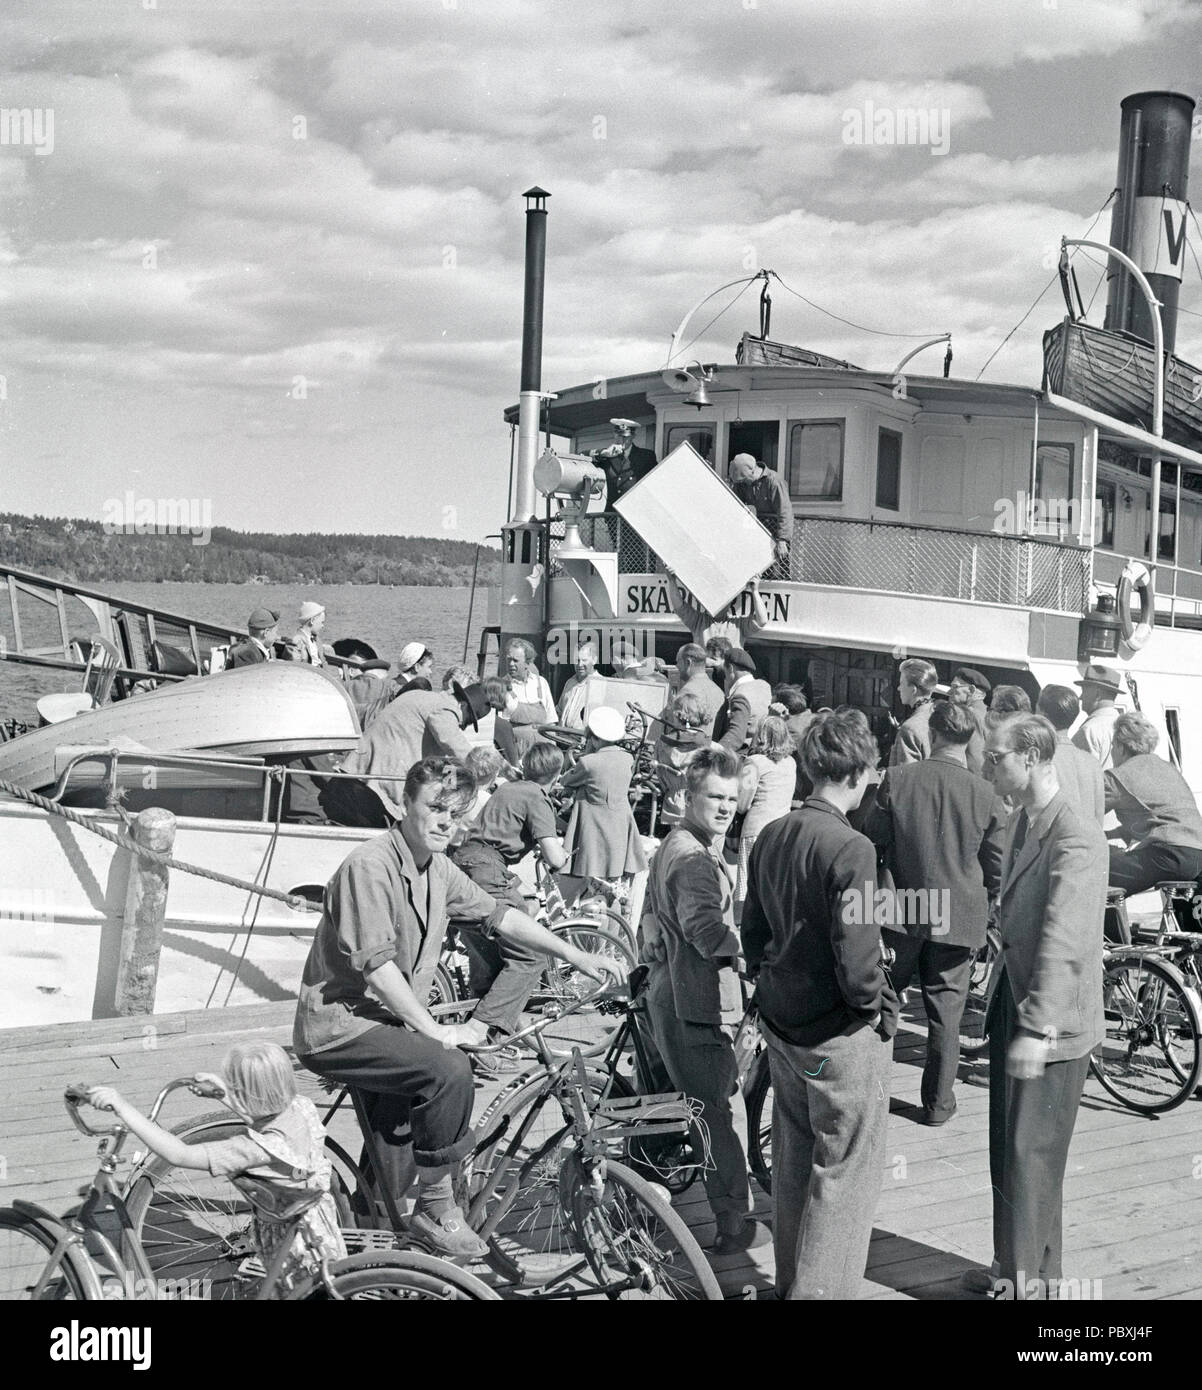 Ingmar Bergman. 1918-2007.  Swedish film director. Pictured here 1950 on the film set of the movie Summer Interlude. The film had premiere 1951. Photographer: Kristoffersson/AZ32-9 - Stock Image